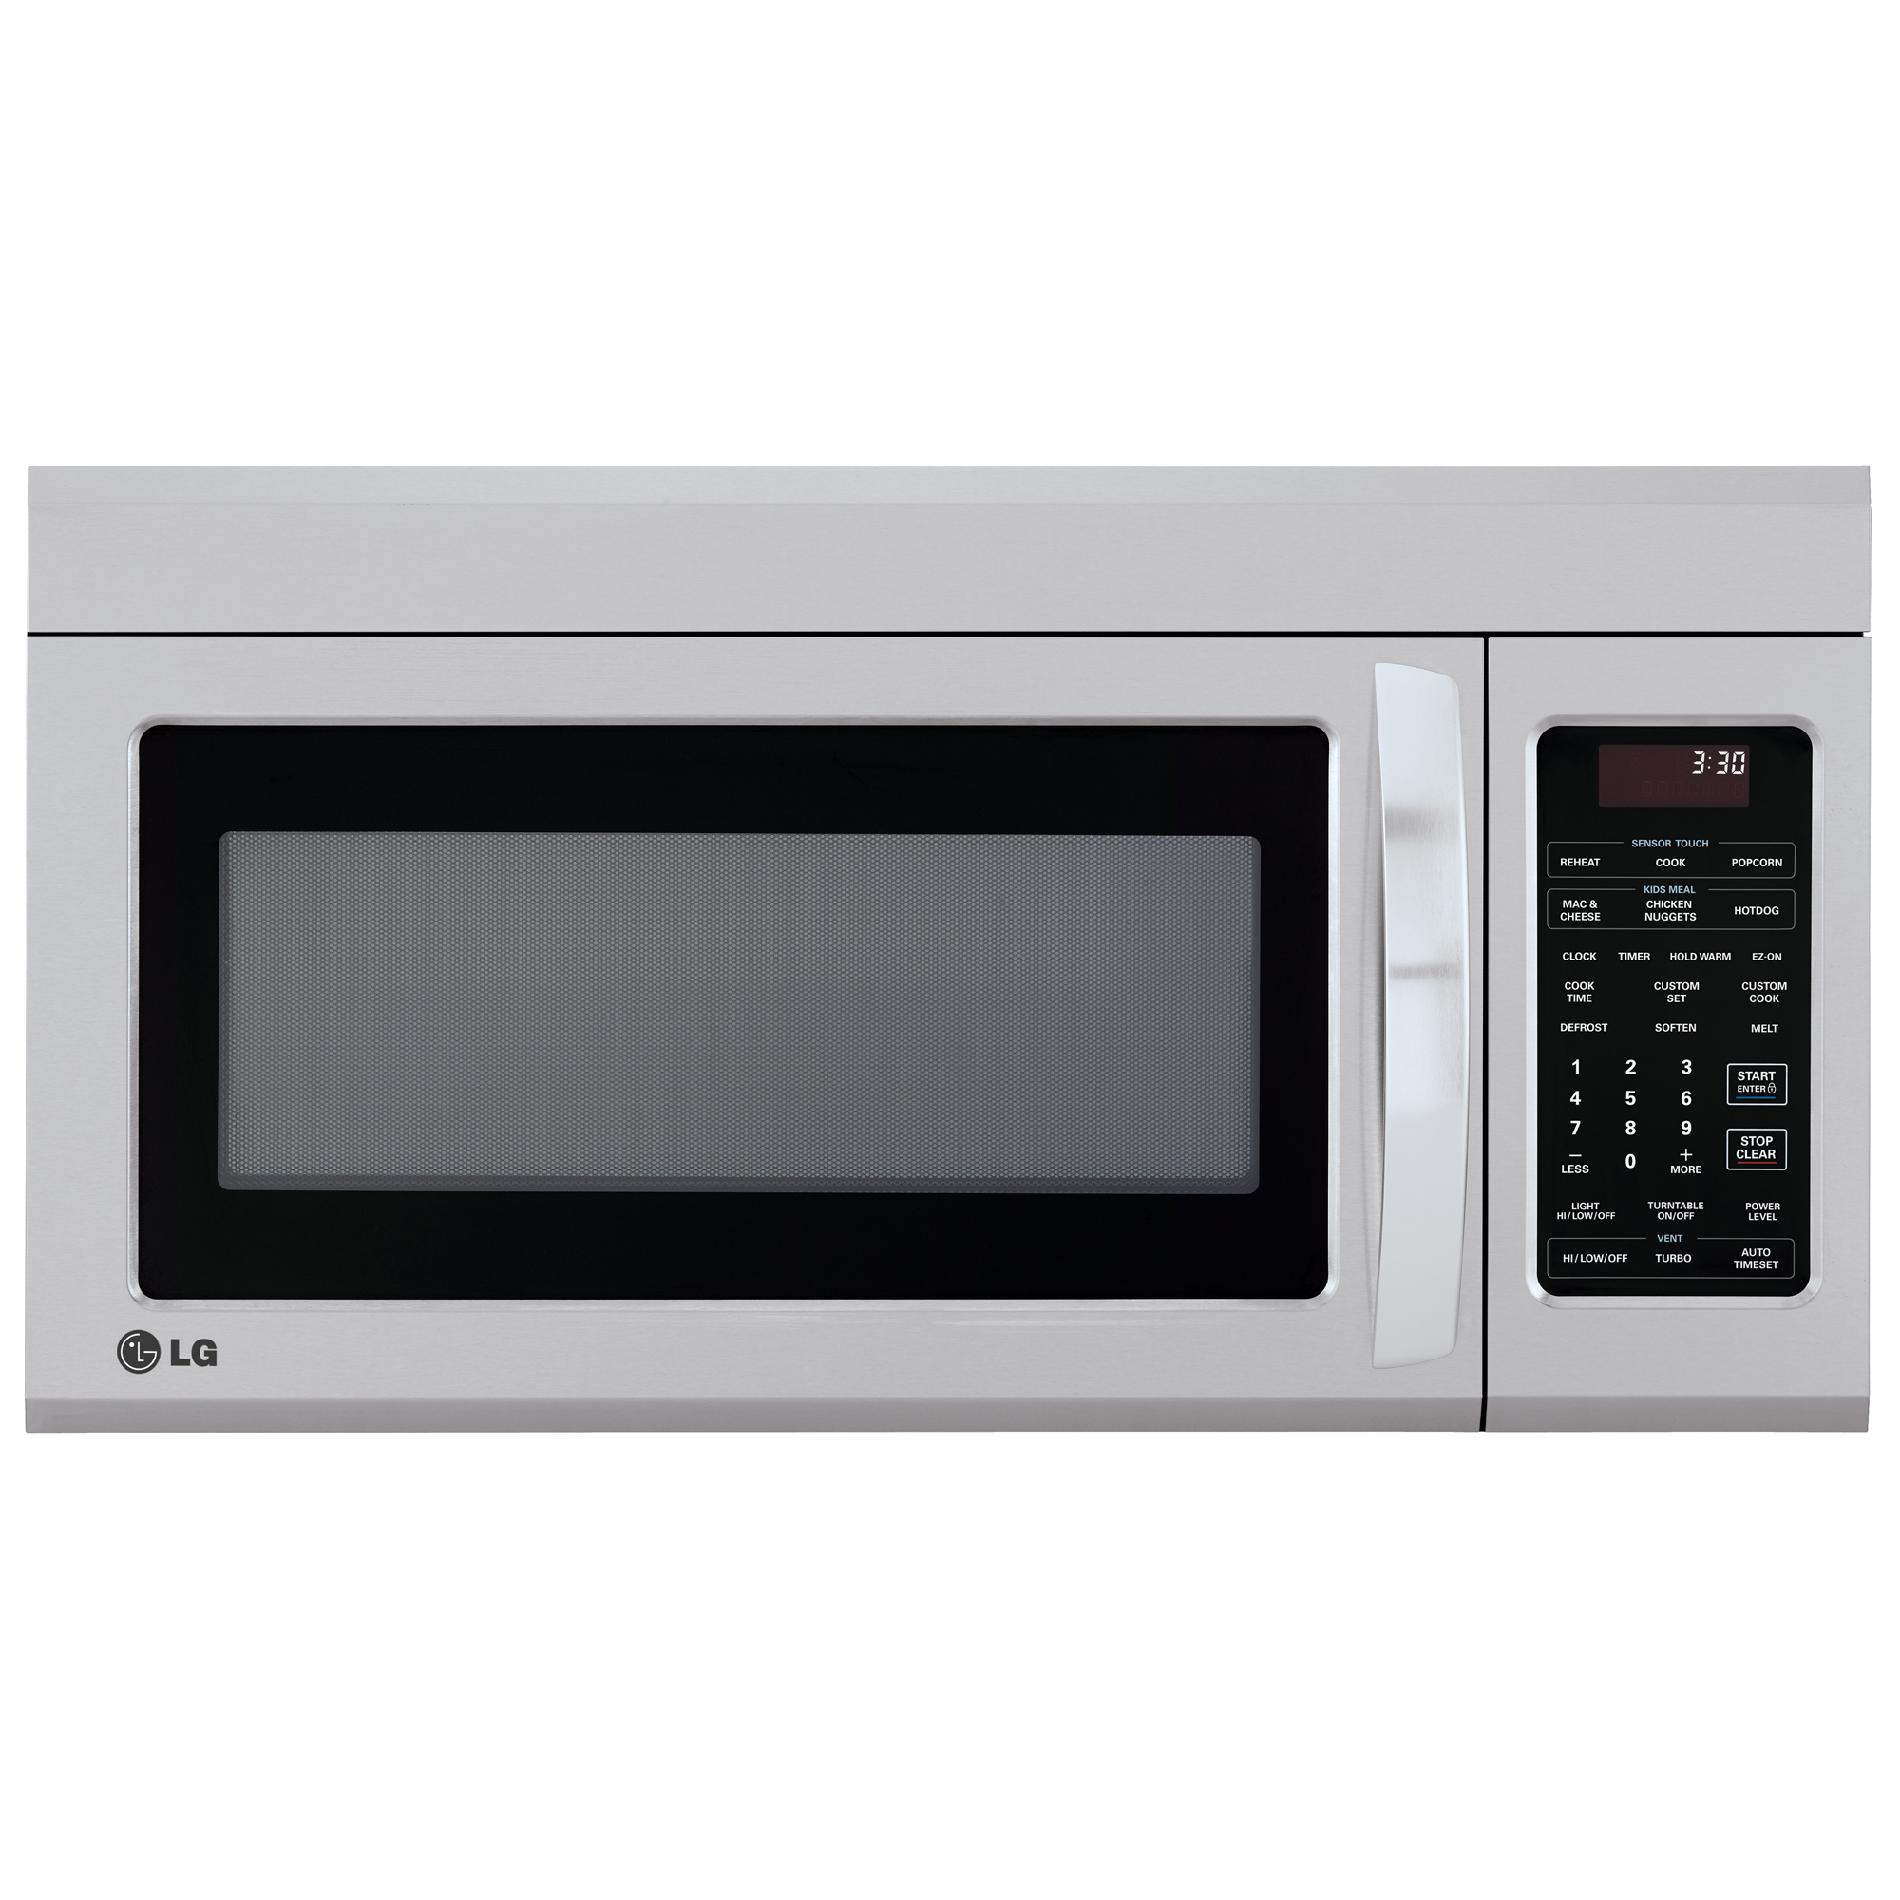 Lg Lmv1831st 1.8 Cu.ft. Over-range Microwave Oven With Easyclean - Stainless Steel